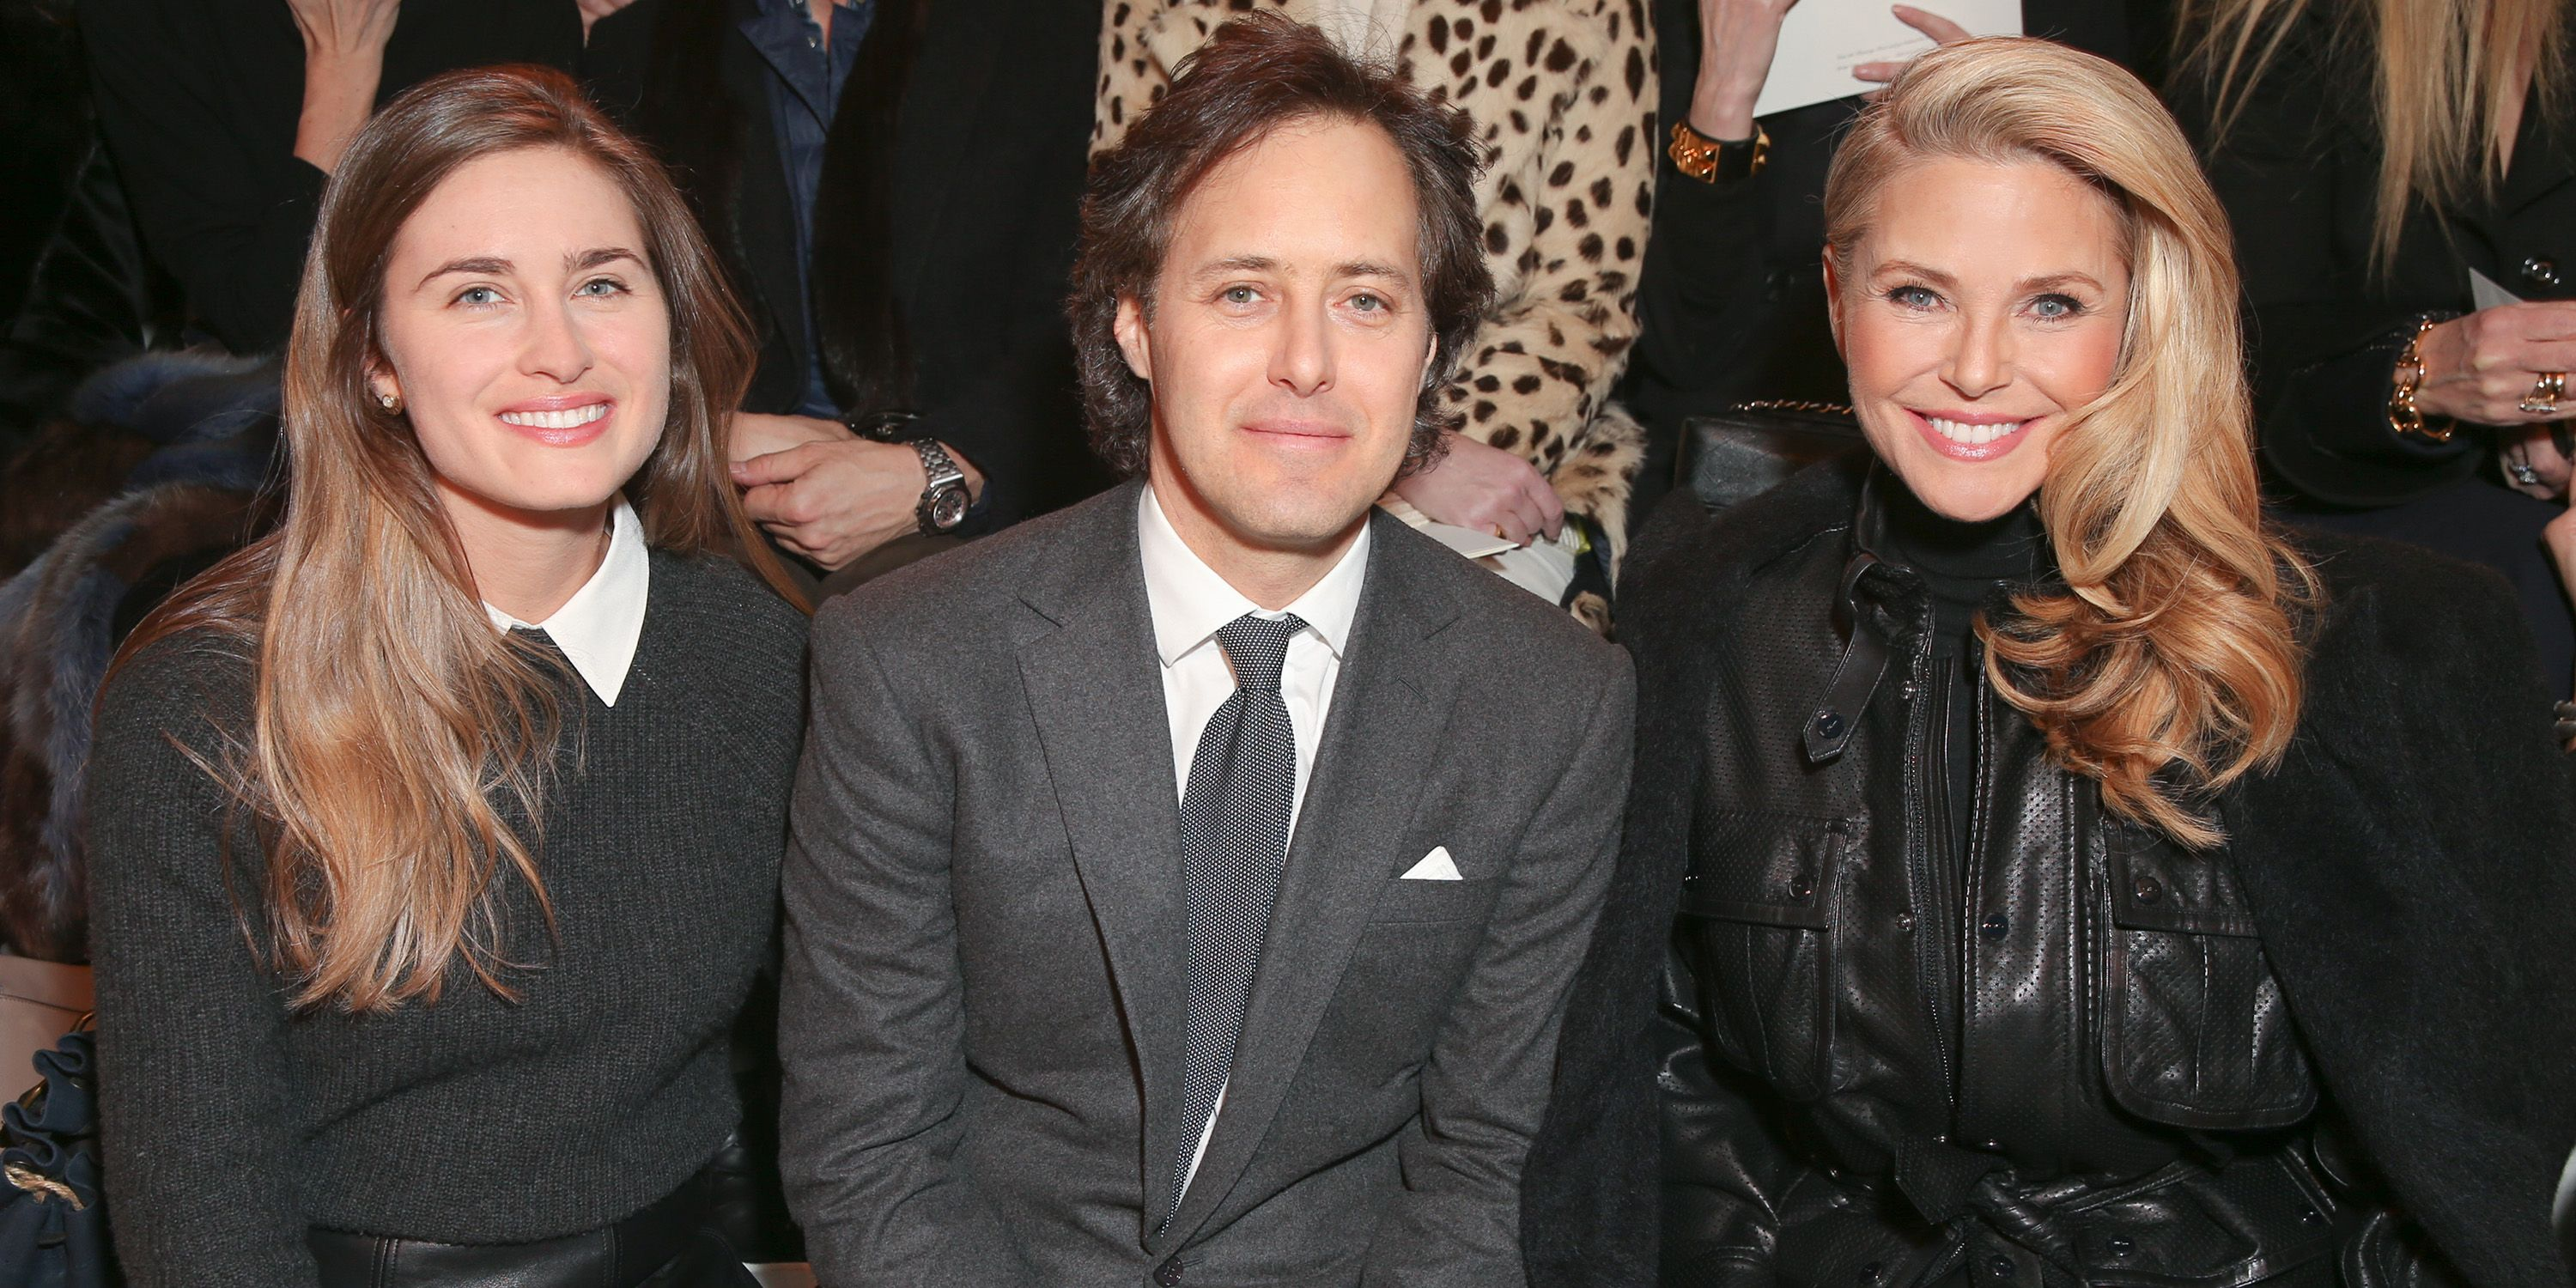 Christie Brinkley, David Lauren, Lauren Bush Lauren